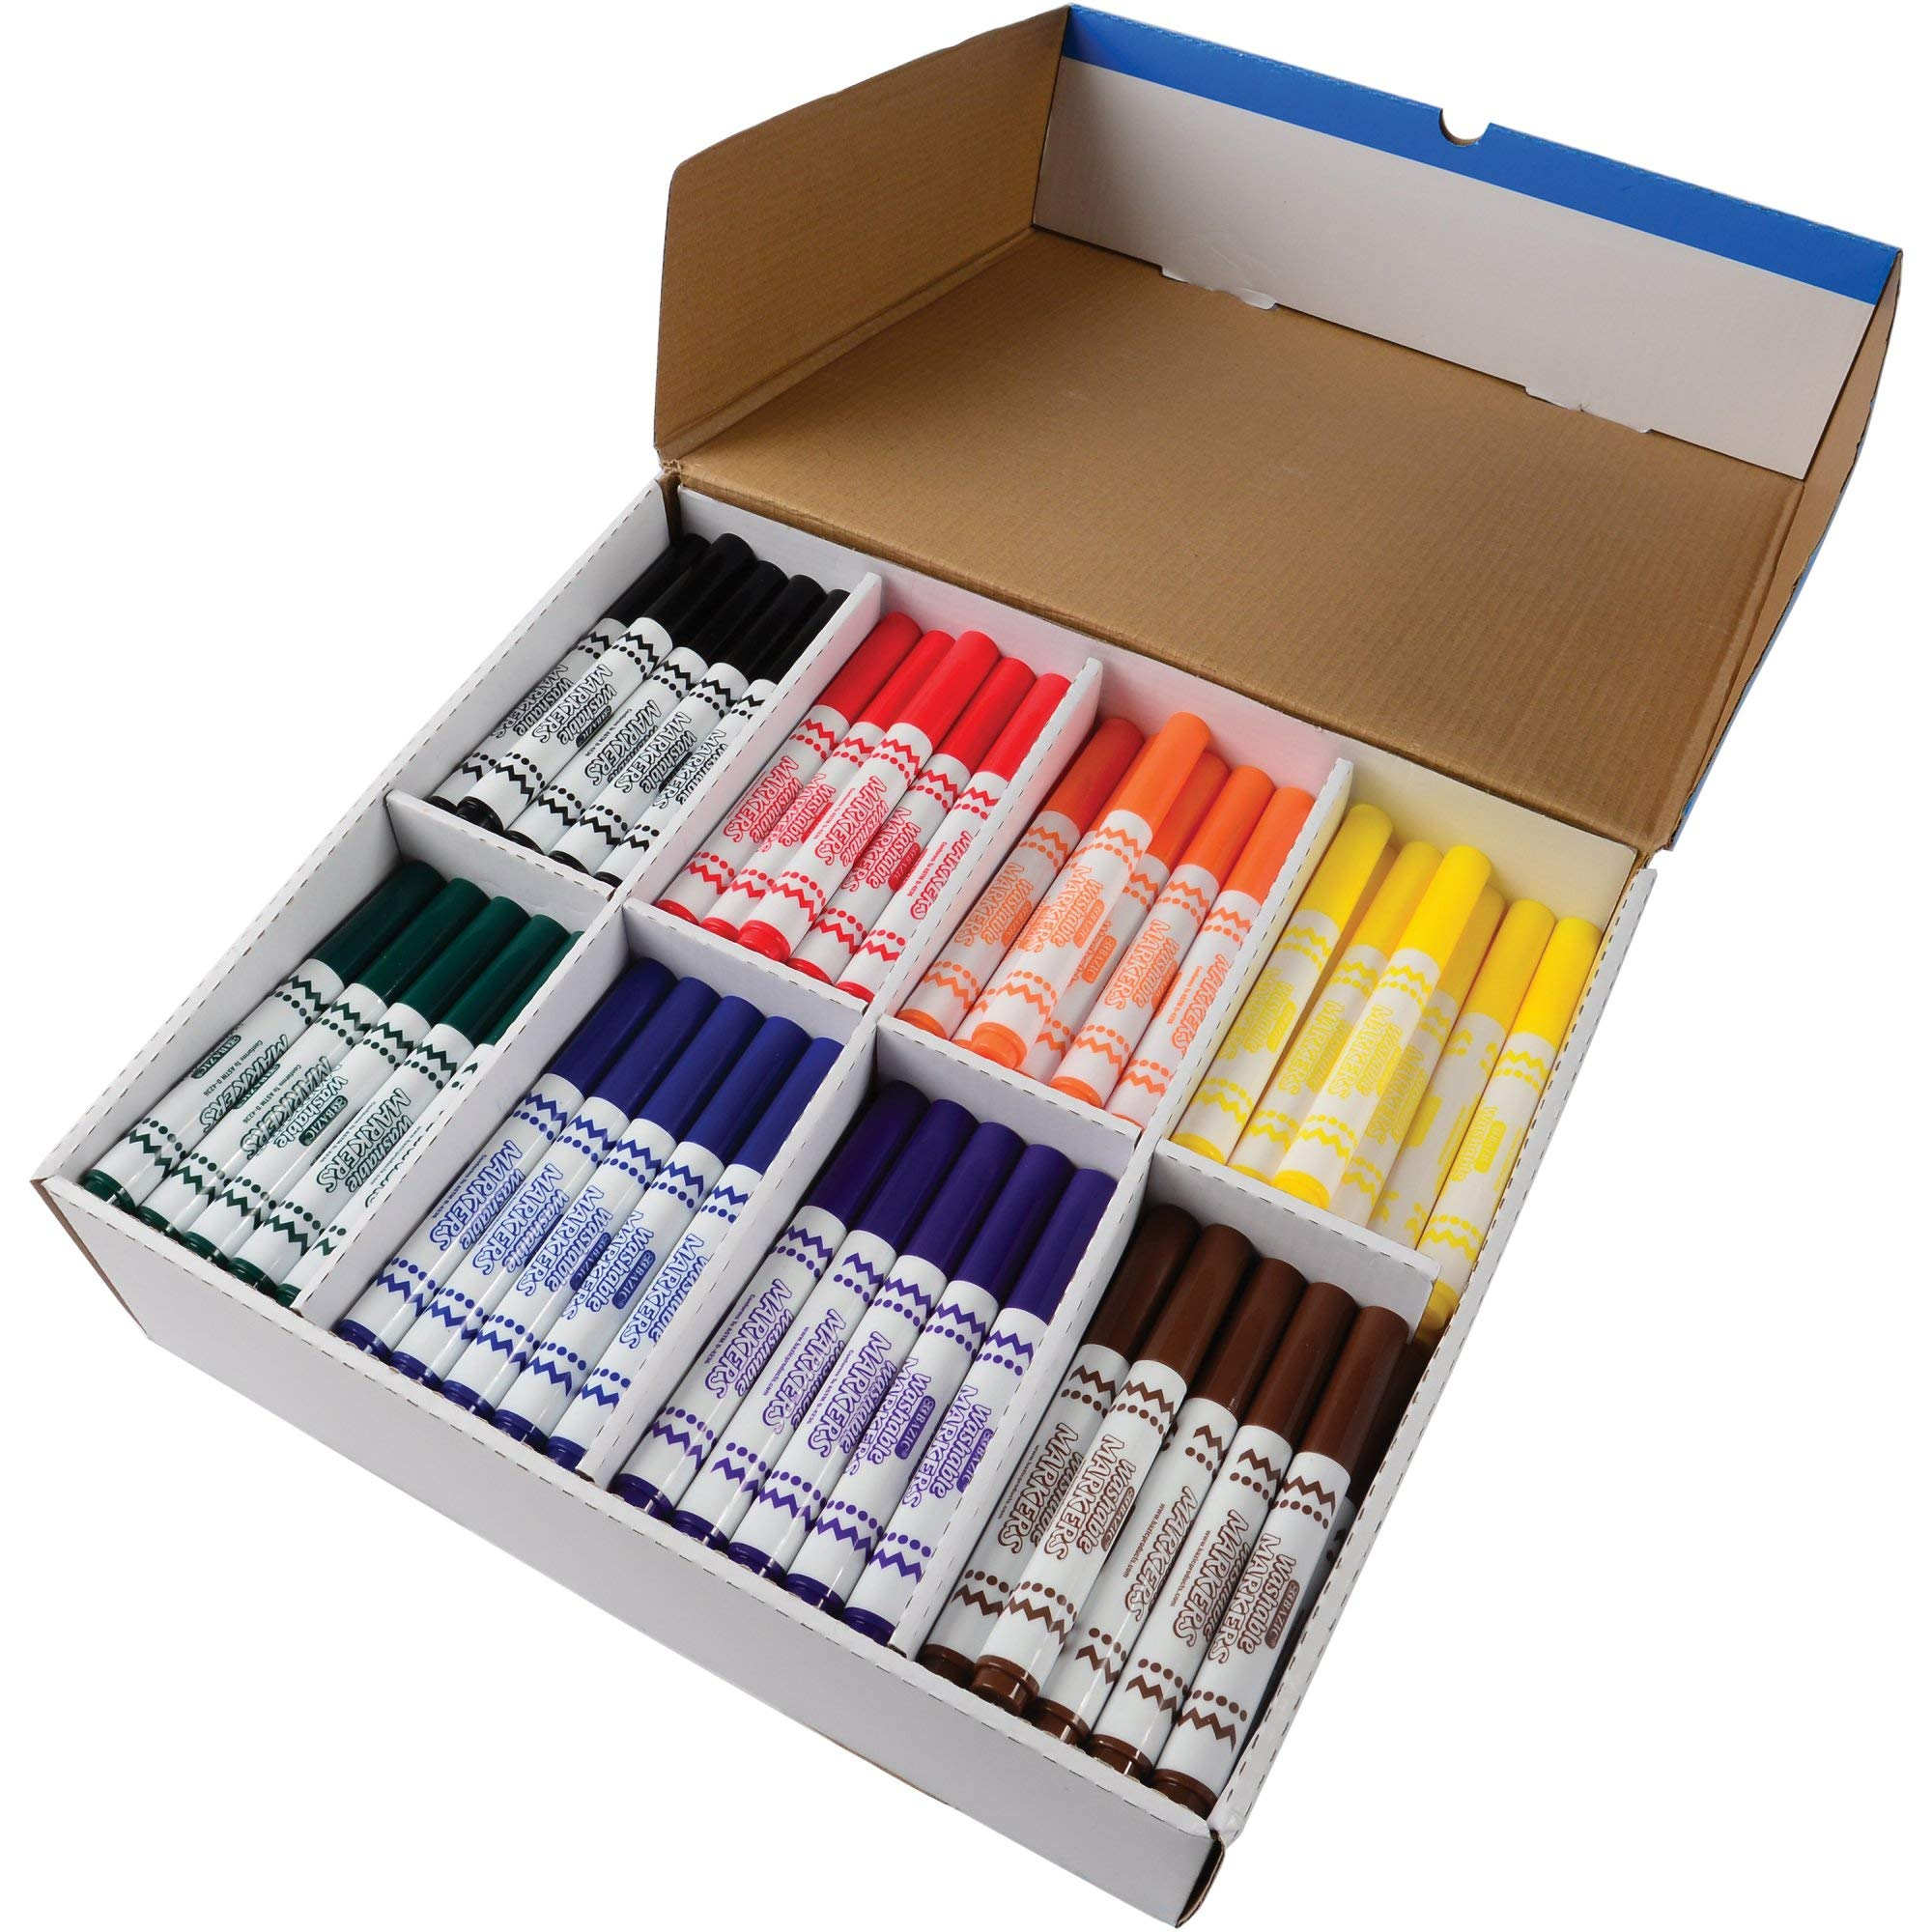 Constructive Playthings BCZ-1235 Jumbo Washable Markers Classroom Pack of 200 Markers in 8 Basic Colors